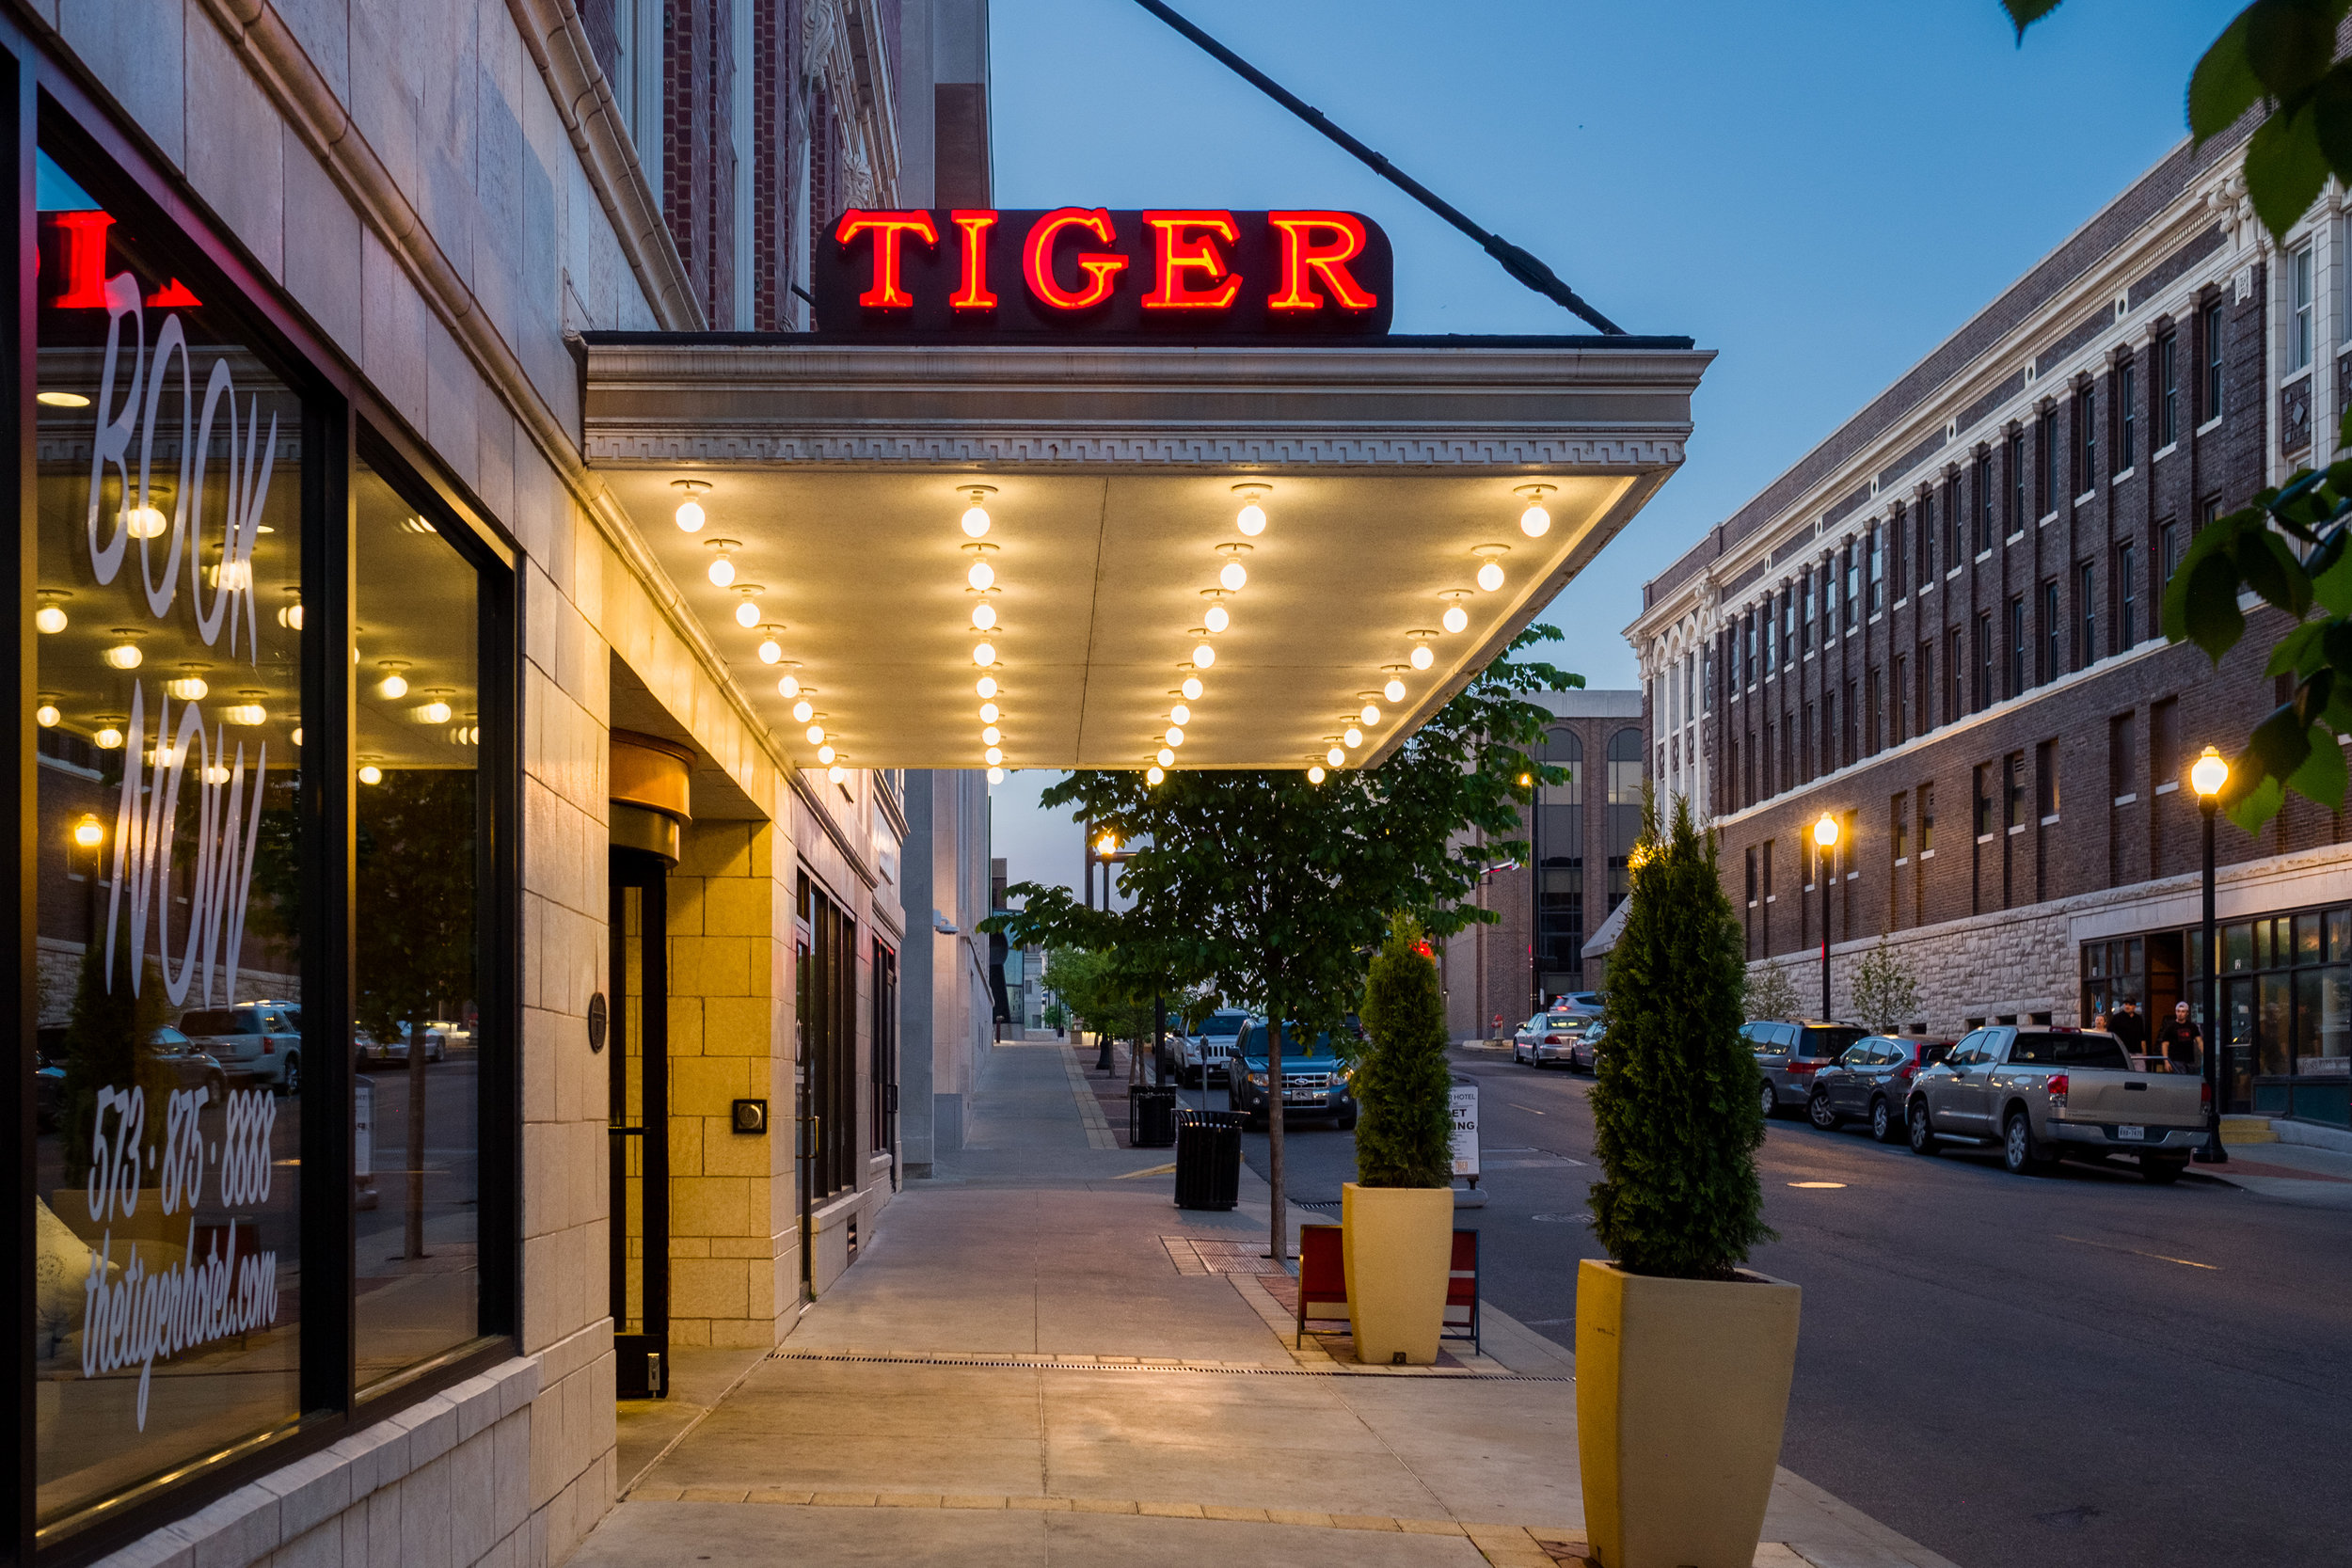 Capital-bootcamp-tiger-hotel-002.jpg